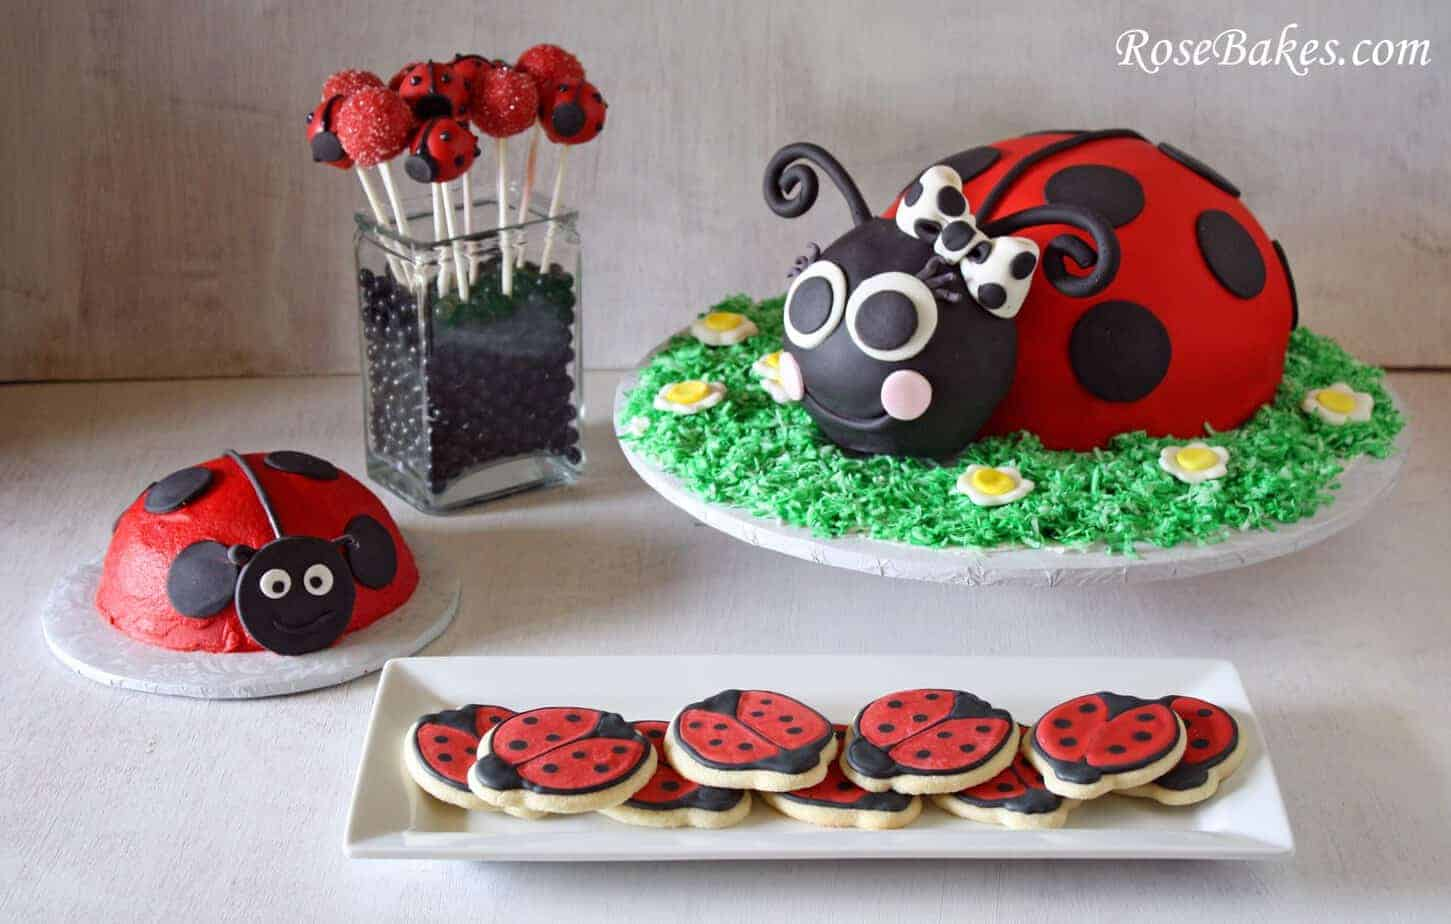 Ladybug Party Cake Cookies Cake Pops & Smash Cake